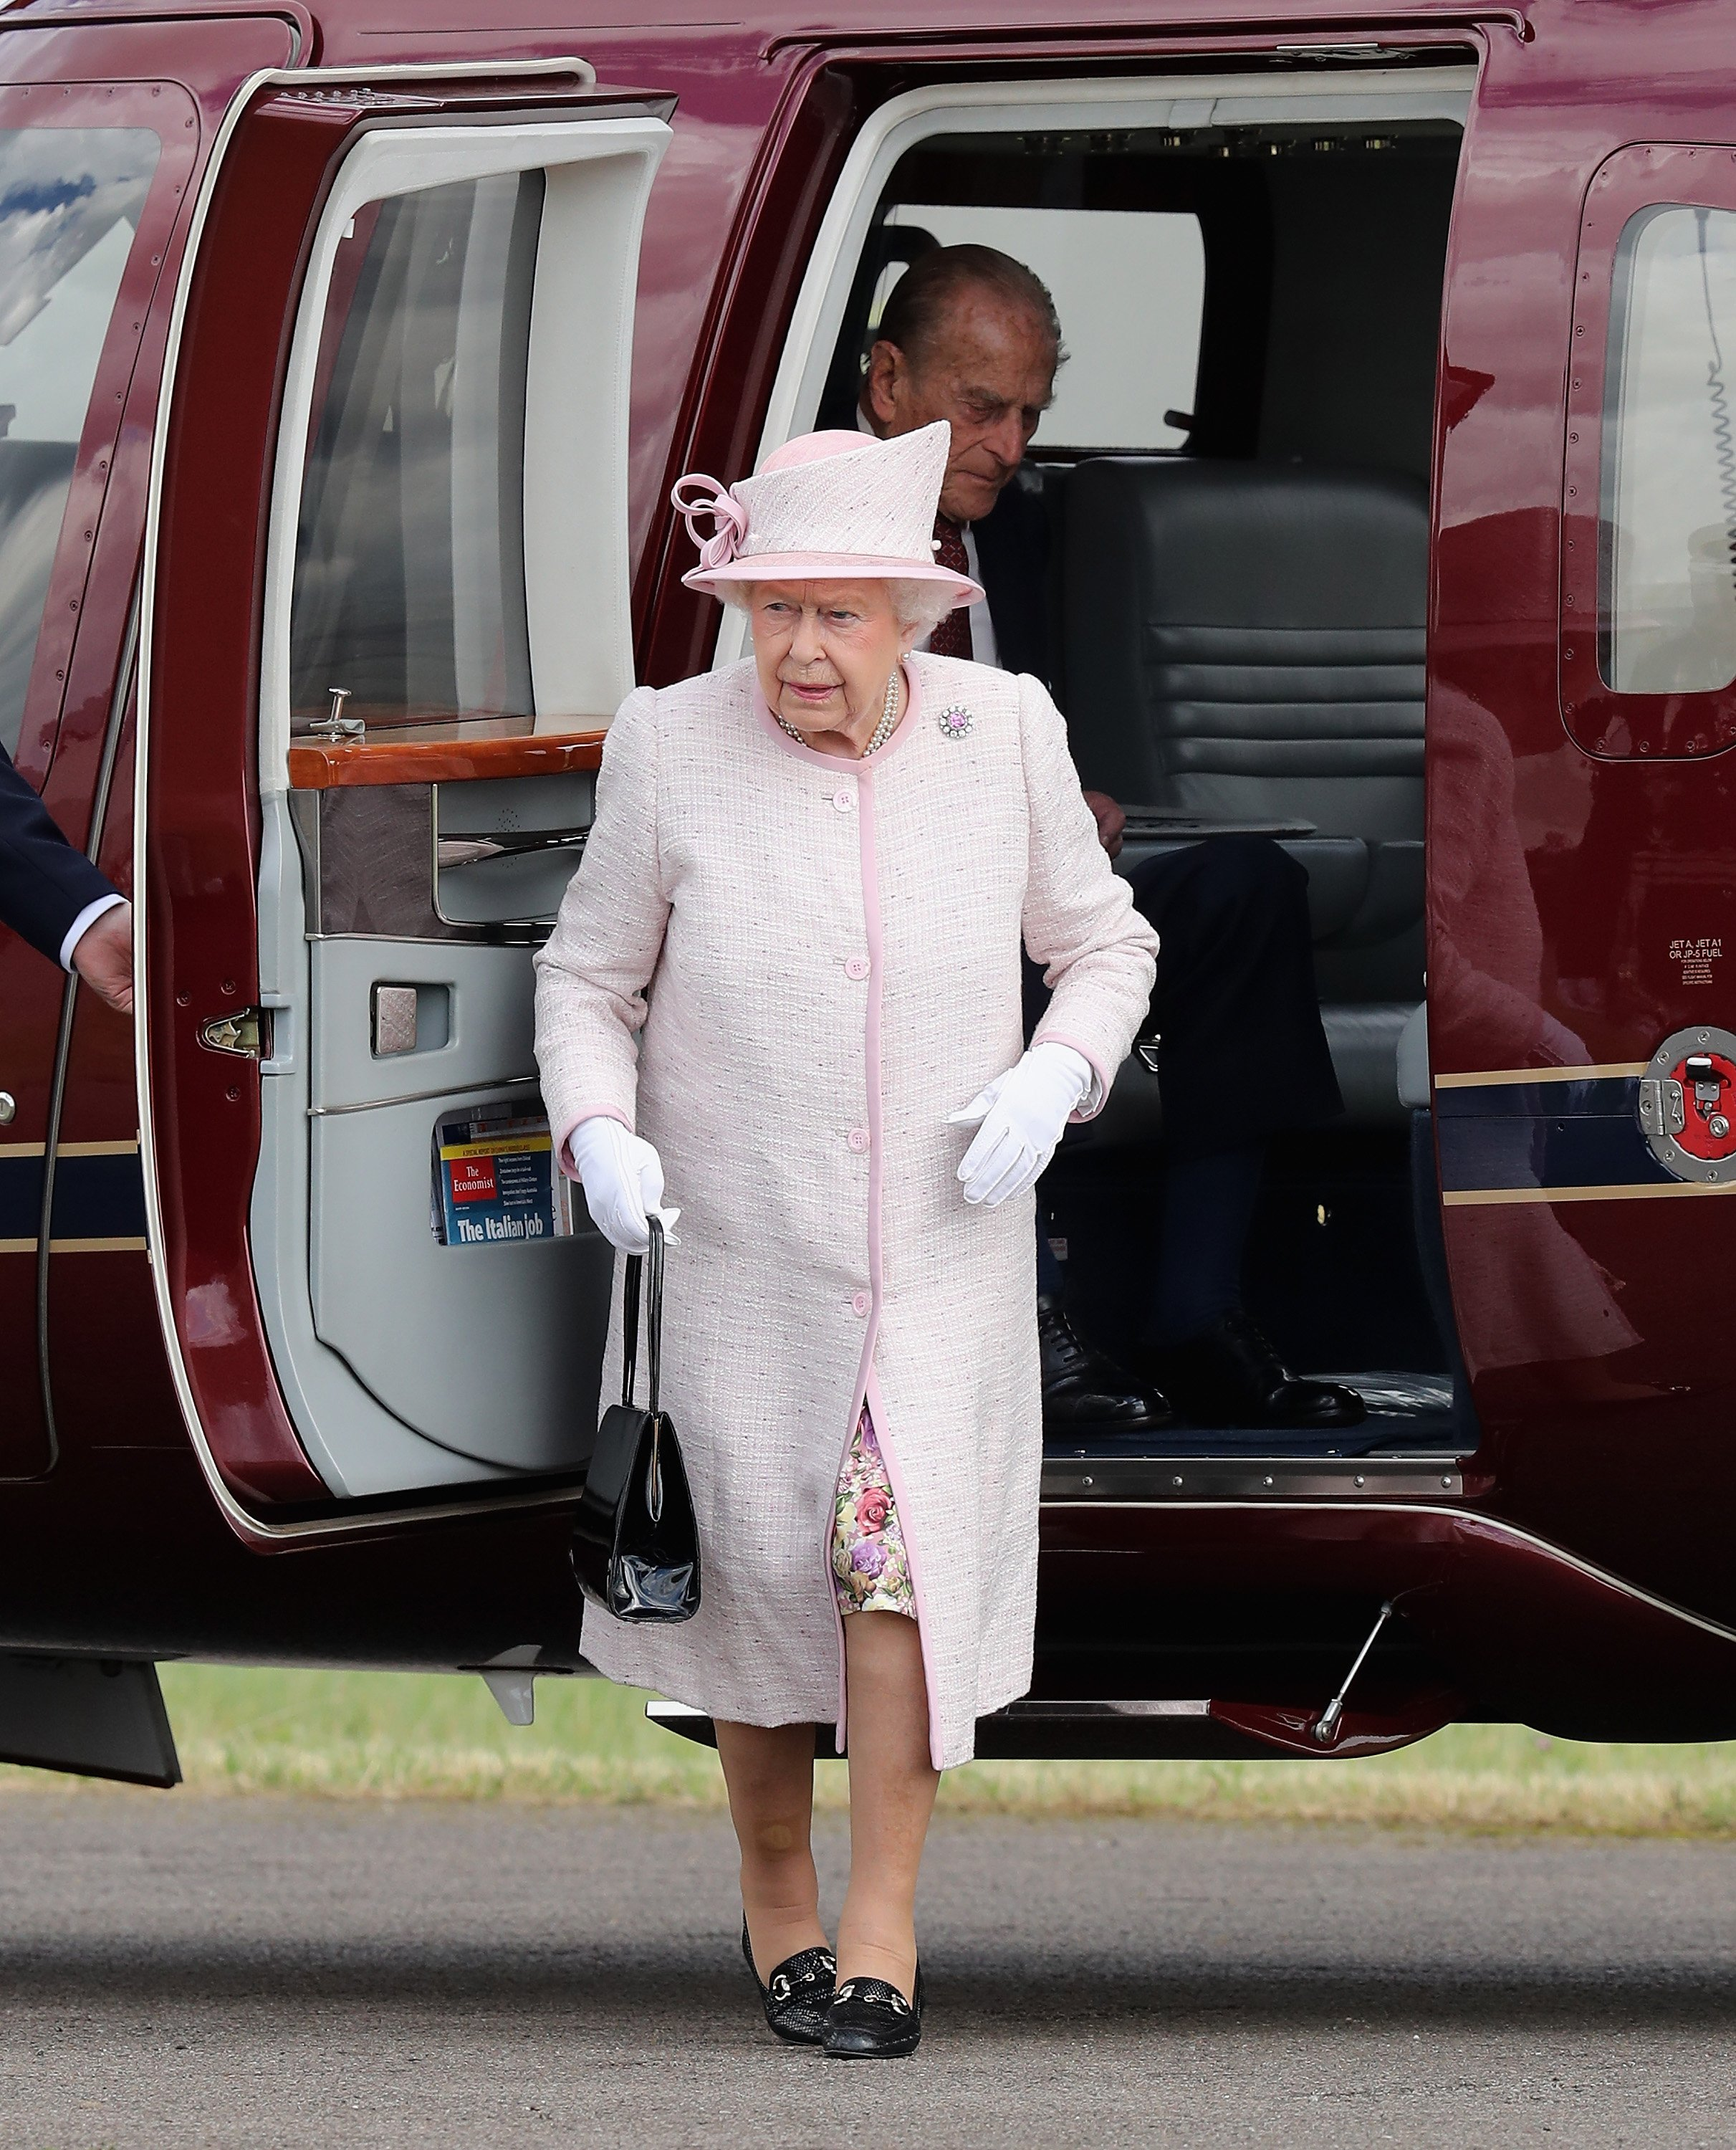 Queen Elizabeth arrives in the royal helicopter to open the new East Anglian Air Ambulance Base at Cambridge Airport on July 13, 2016 in Cambridge, England | Photo: Getty Images